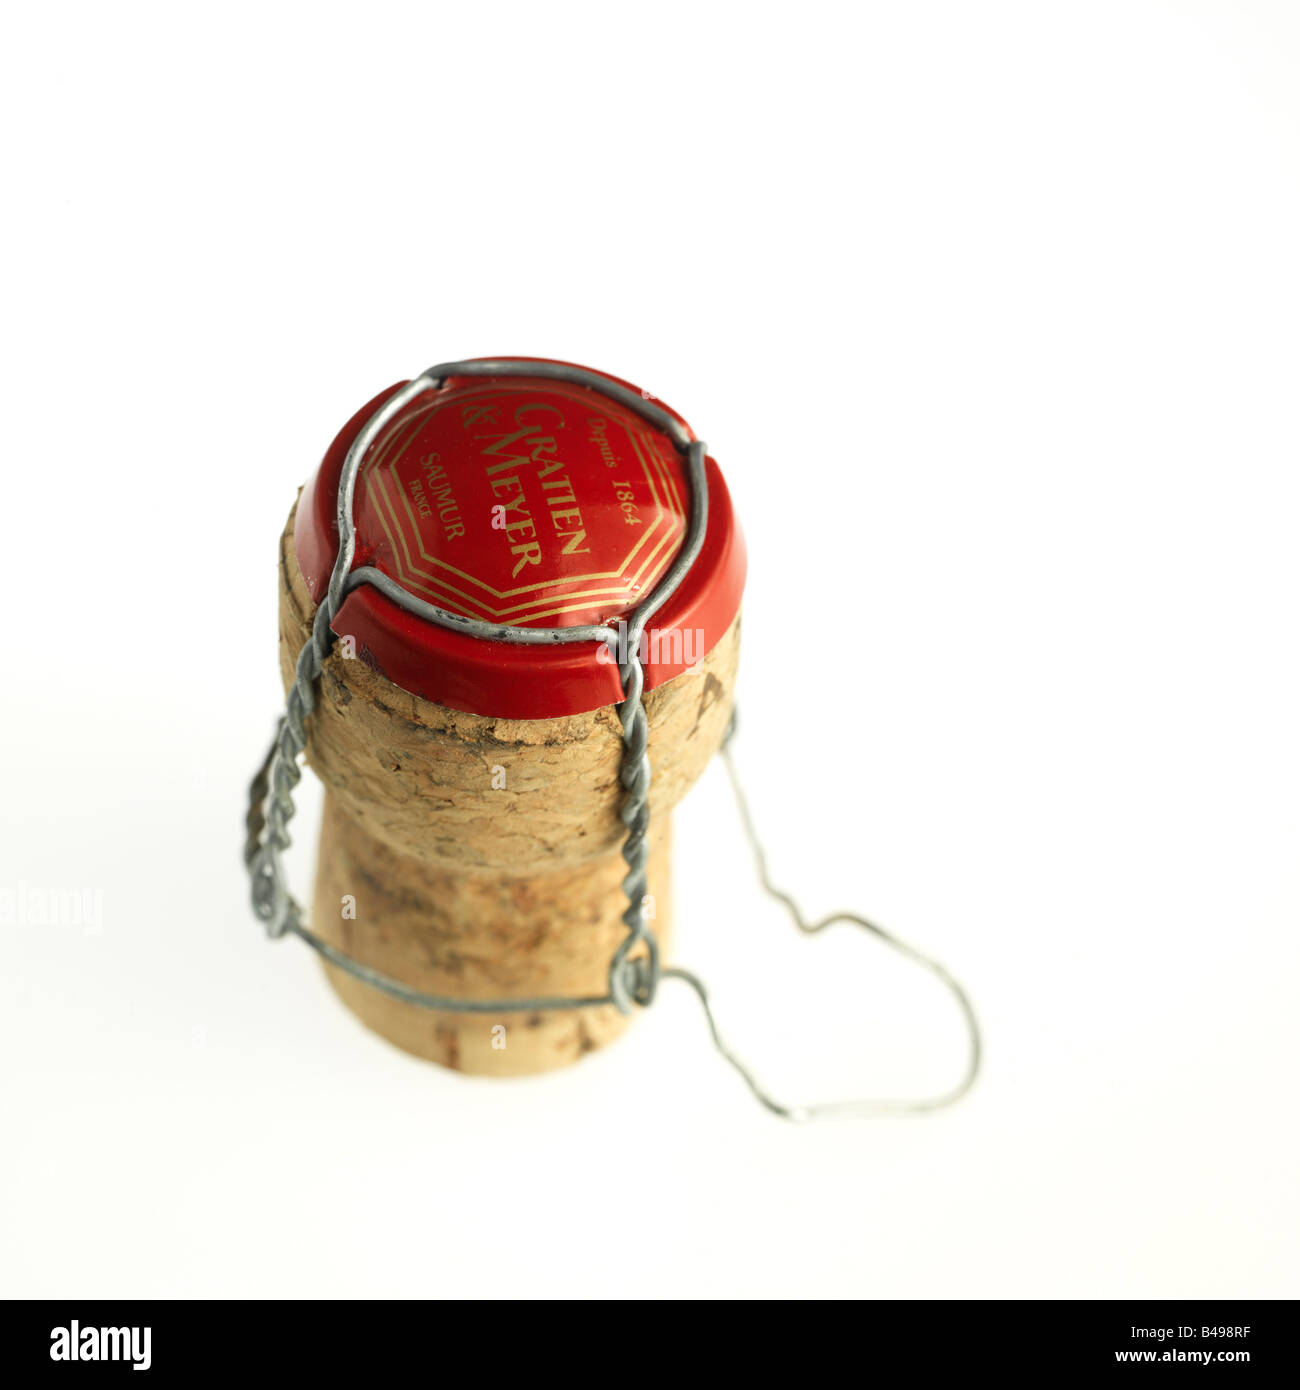 Champagne cork with metal crown wire cage. - Stock Image